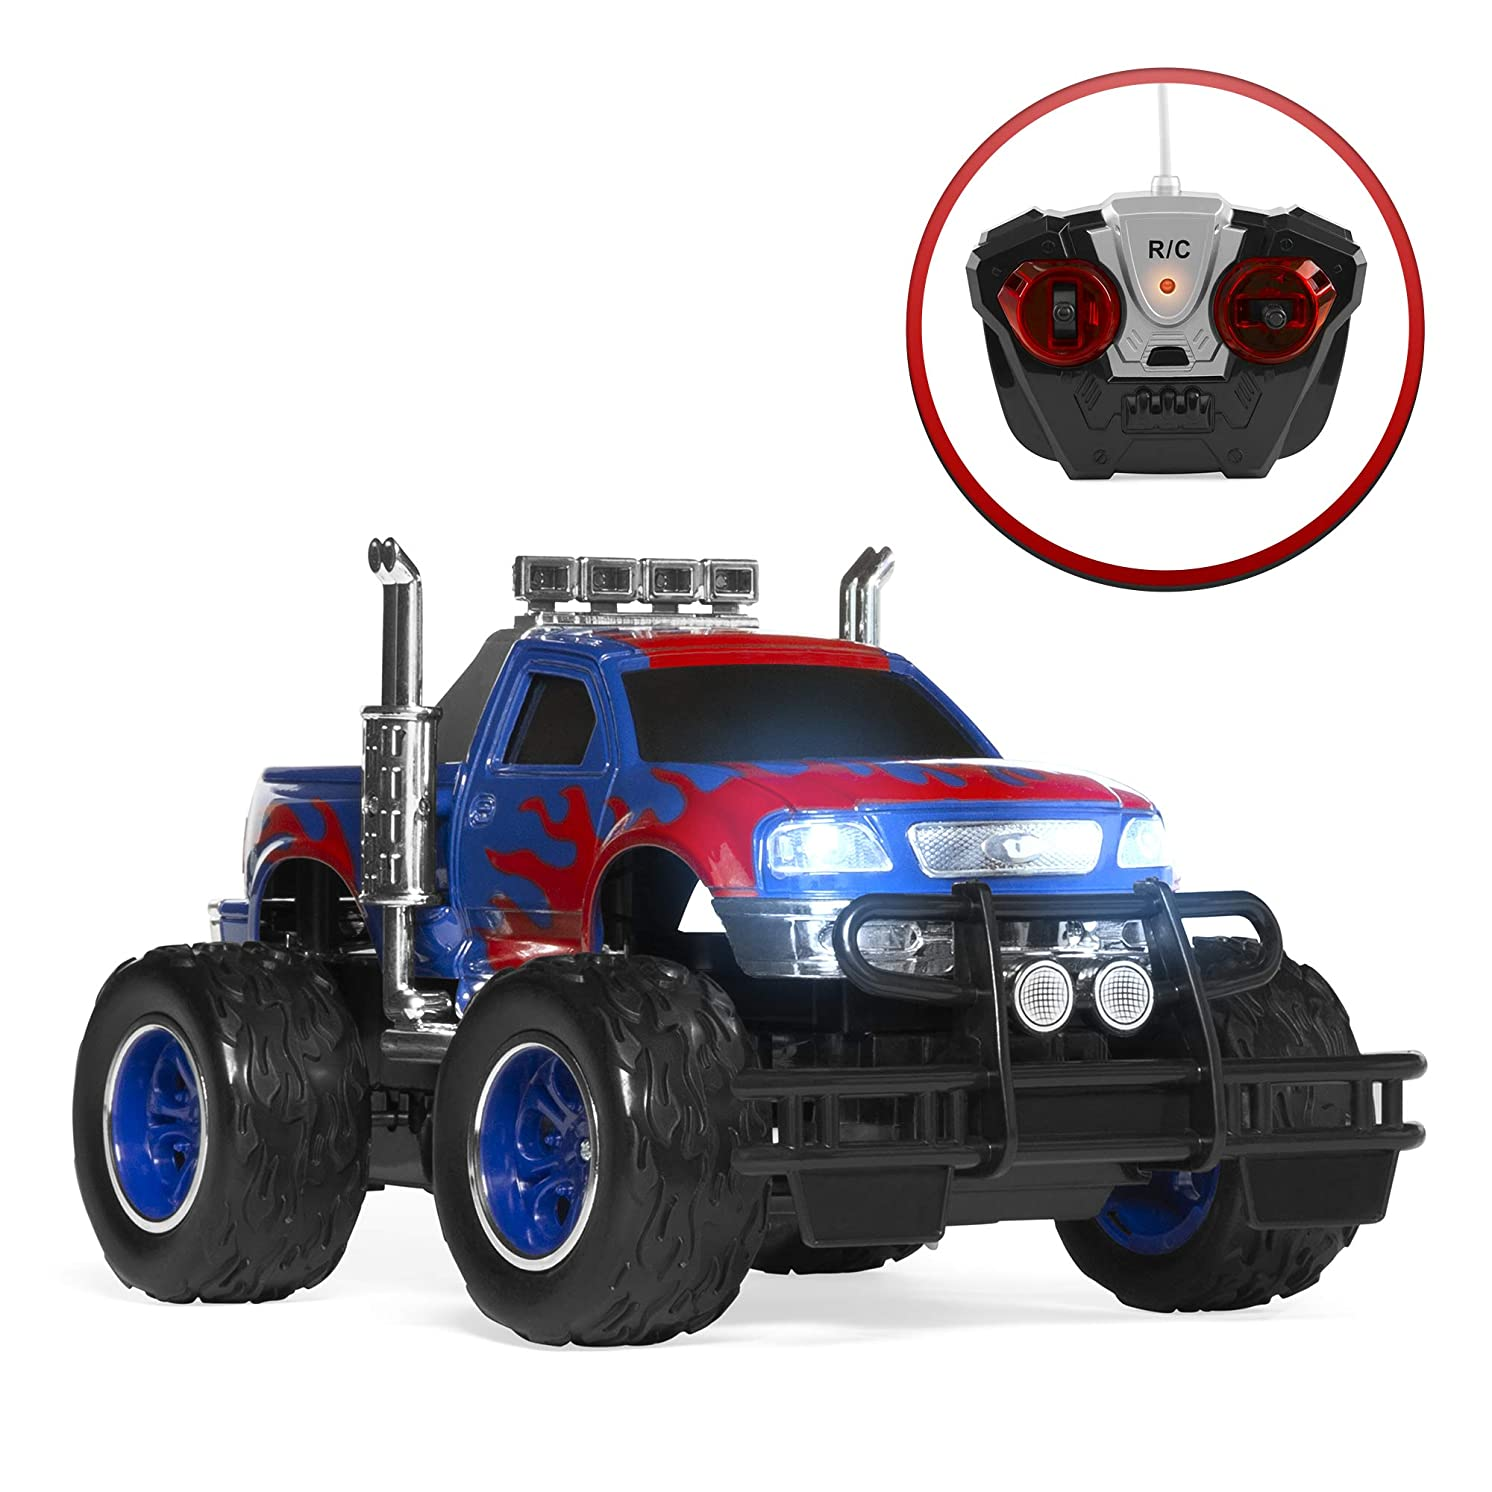 Best Choice Products 1/16 Scale Kids RC Monster Truck with Headlights and Climbing Tires, Blue/Red